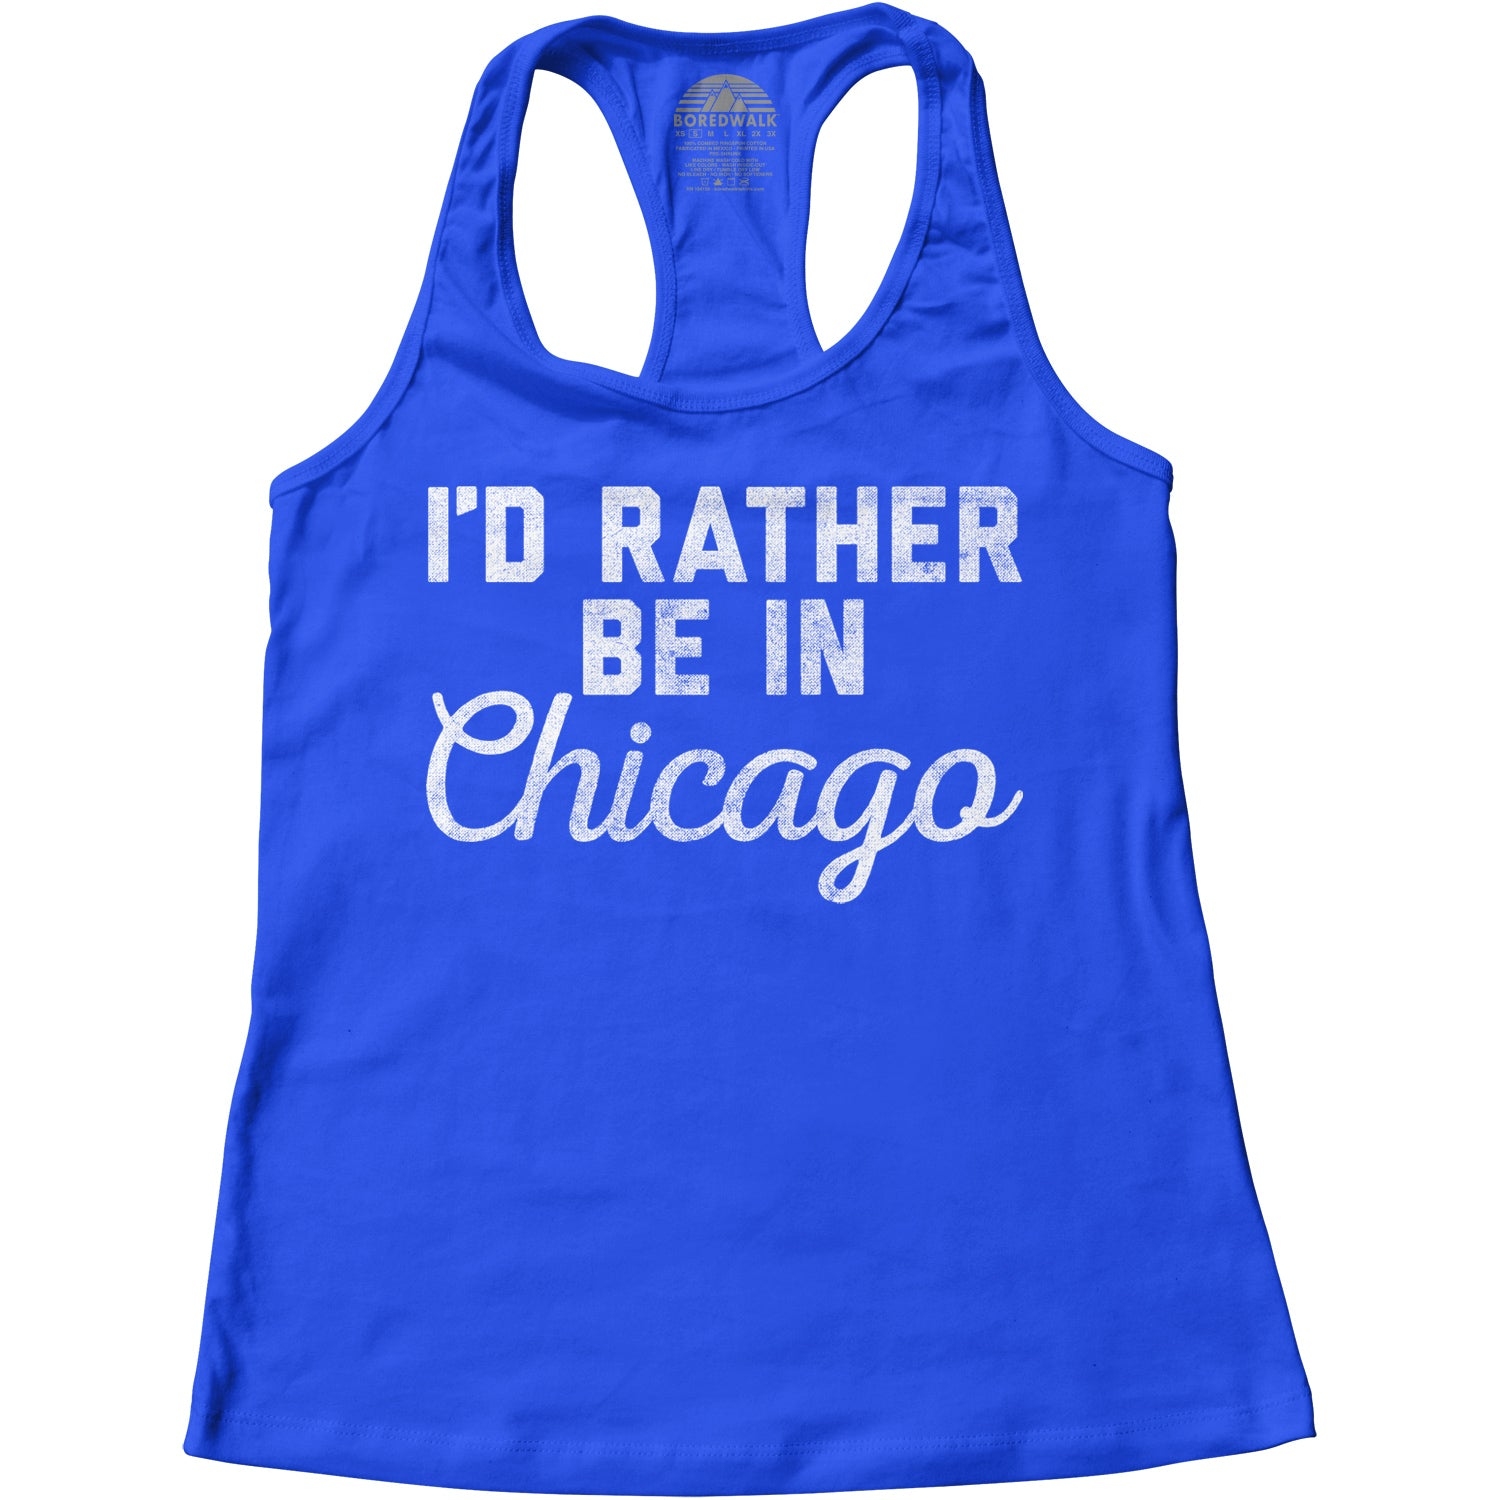 Women's I'd Rather Be in Chicago Racerback Tank Top